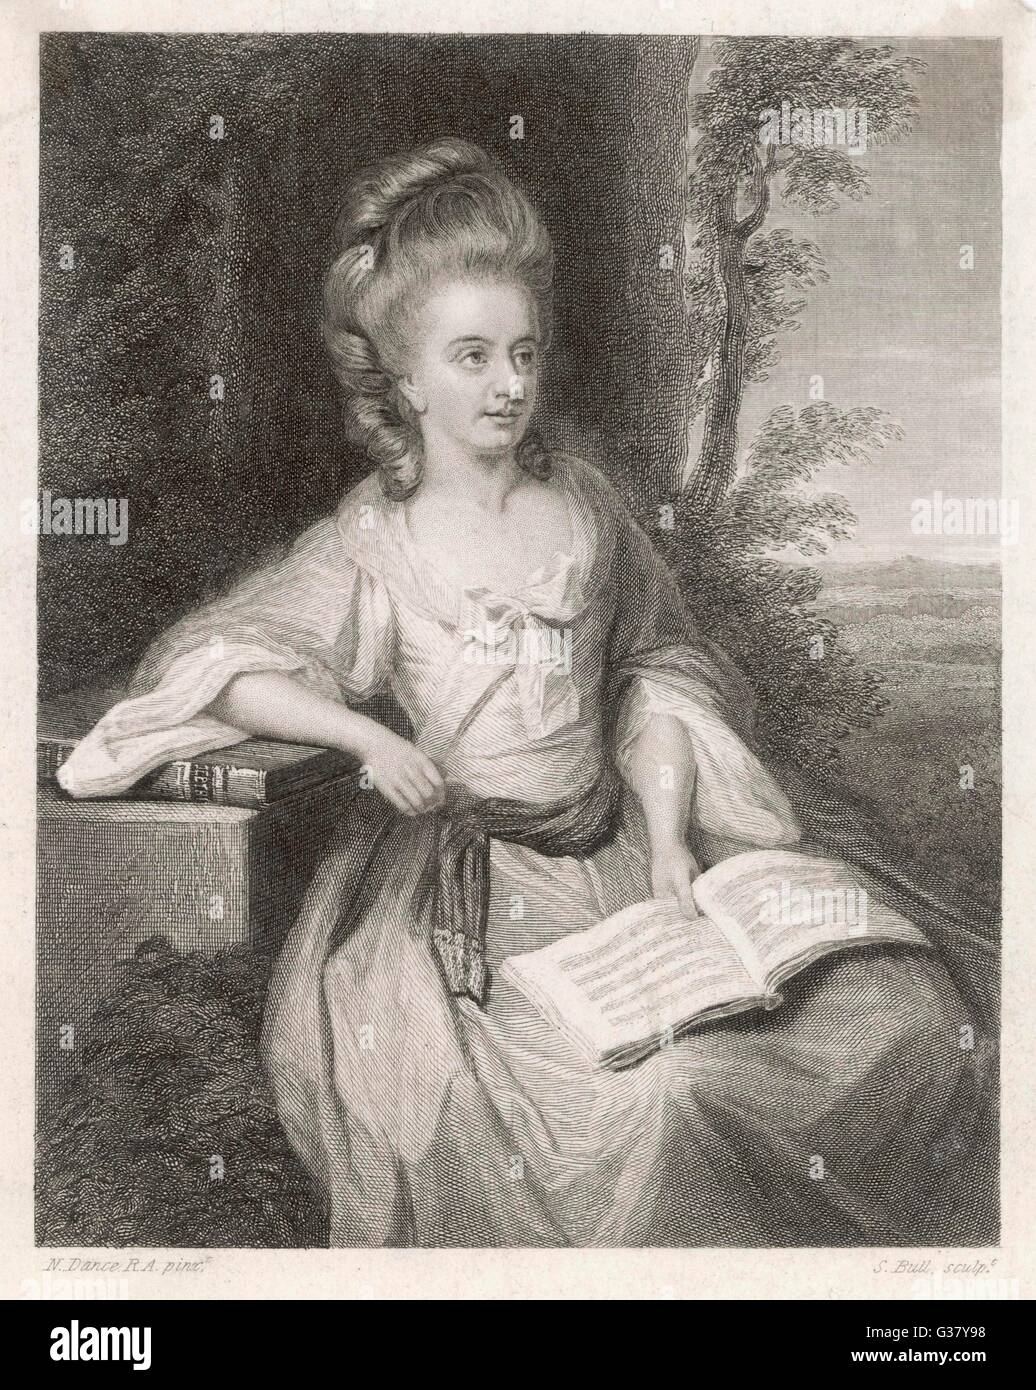 Martha Ray(1742-1779), British singer and mistress of the 4th Earl of  Sandwich. She was murdered by a jealous lover, - Stock Image